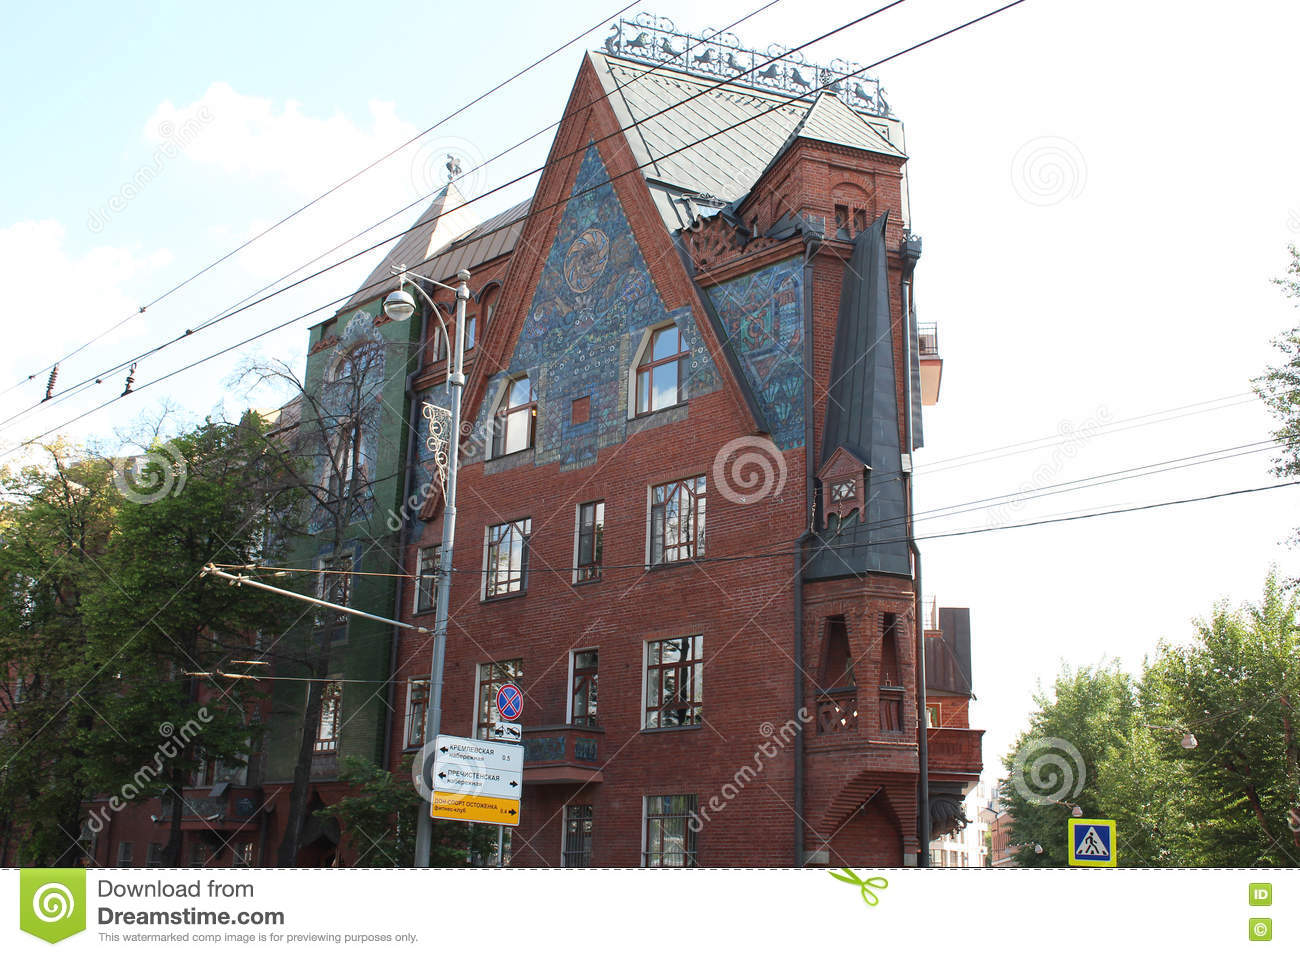 Pertsov House Moscow, Pertsov House stock image. Image of building, clear, brick - 79626337